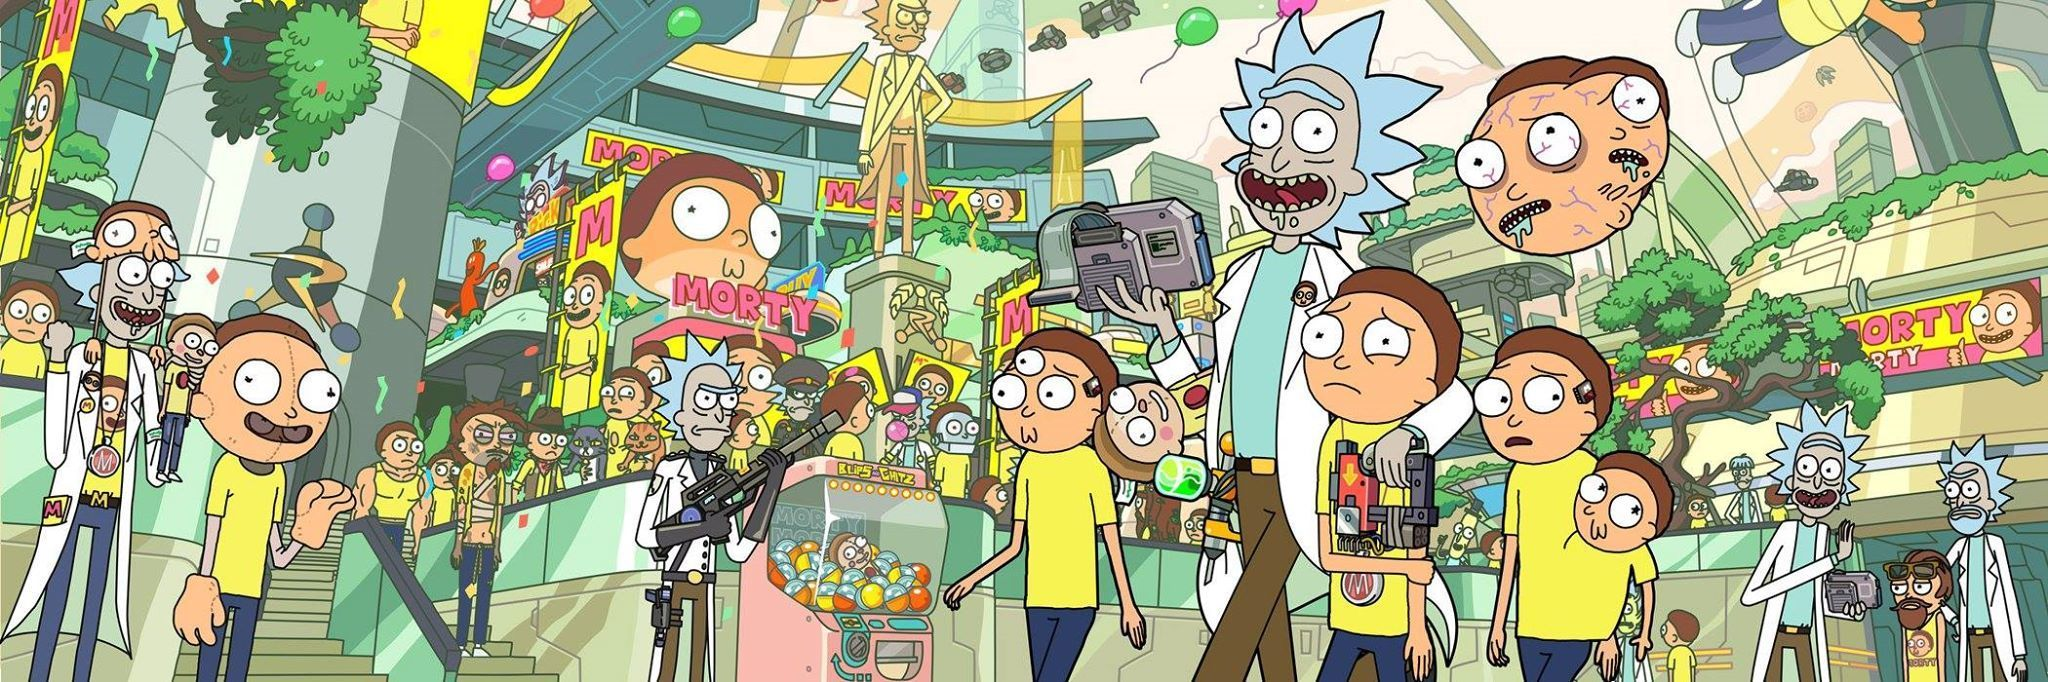 How to Get the Most Out of the \u0027Rick and Morty\u0027 Mobile Game